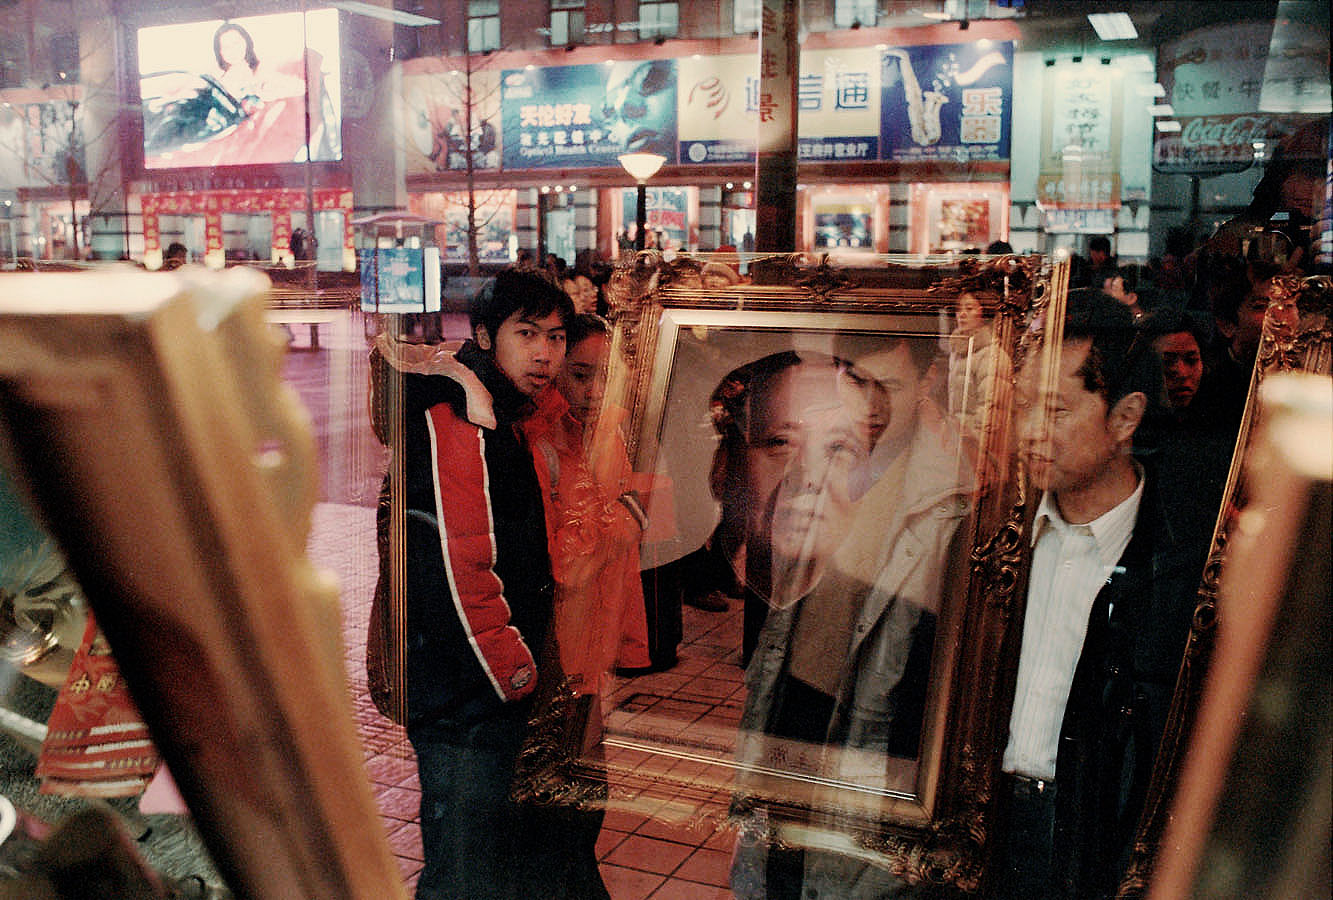 Portraits of Mao refelcts in the window of a photographer store in a commercial artery of Beijing.